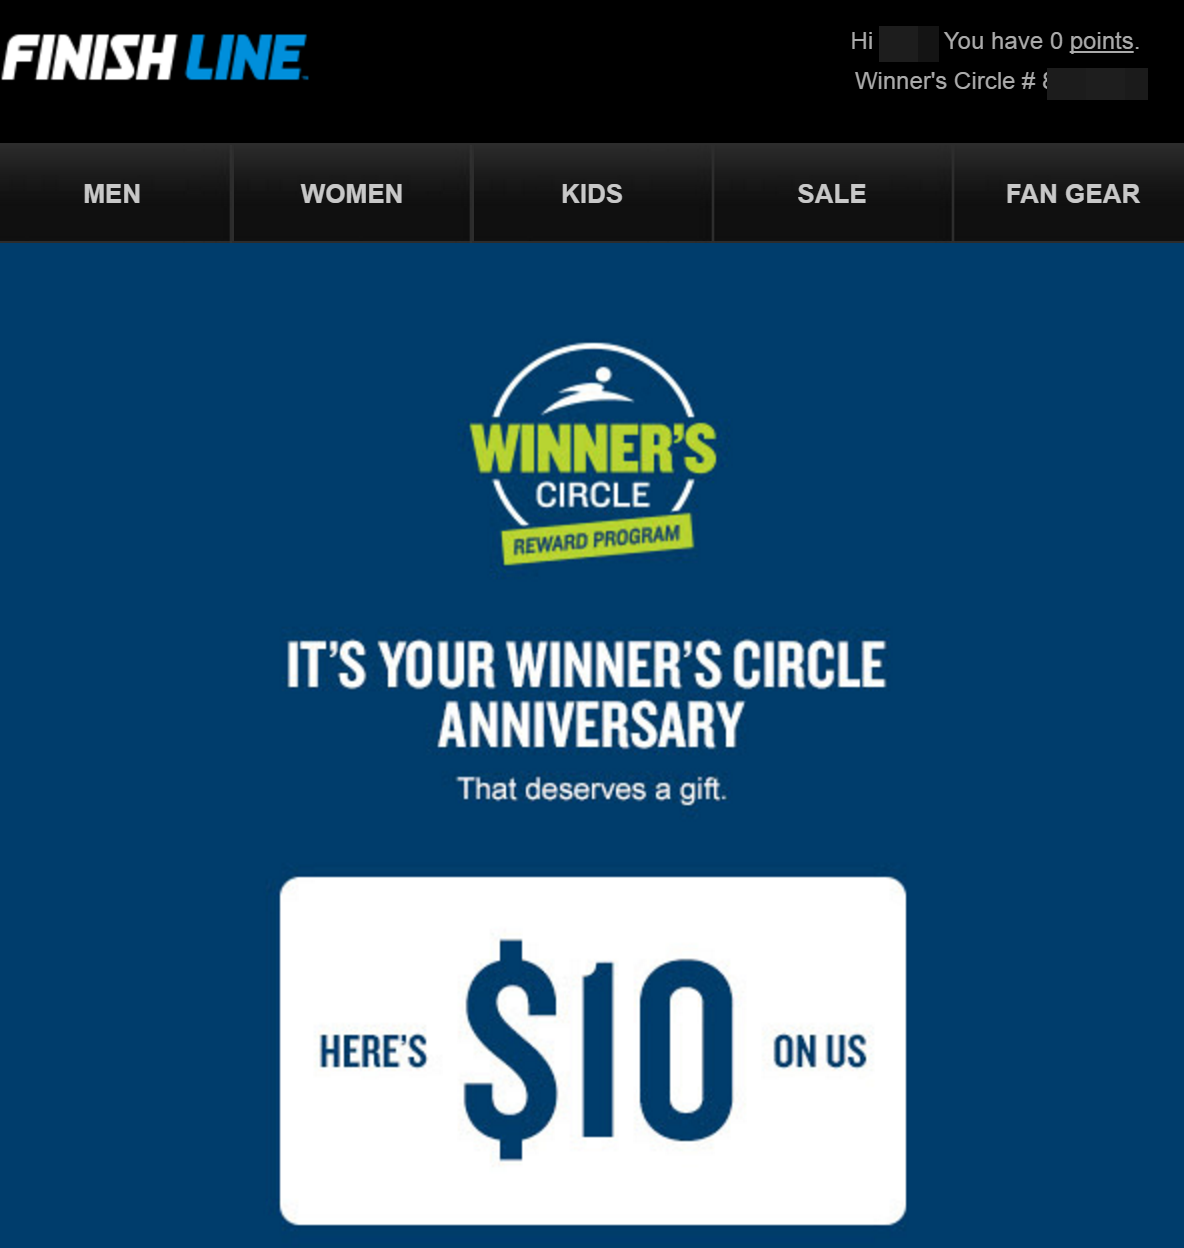 photograph relating to Finish Line Printable Coupons named Entire line winners circle coupon code / Least difficult starwood lodges